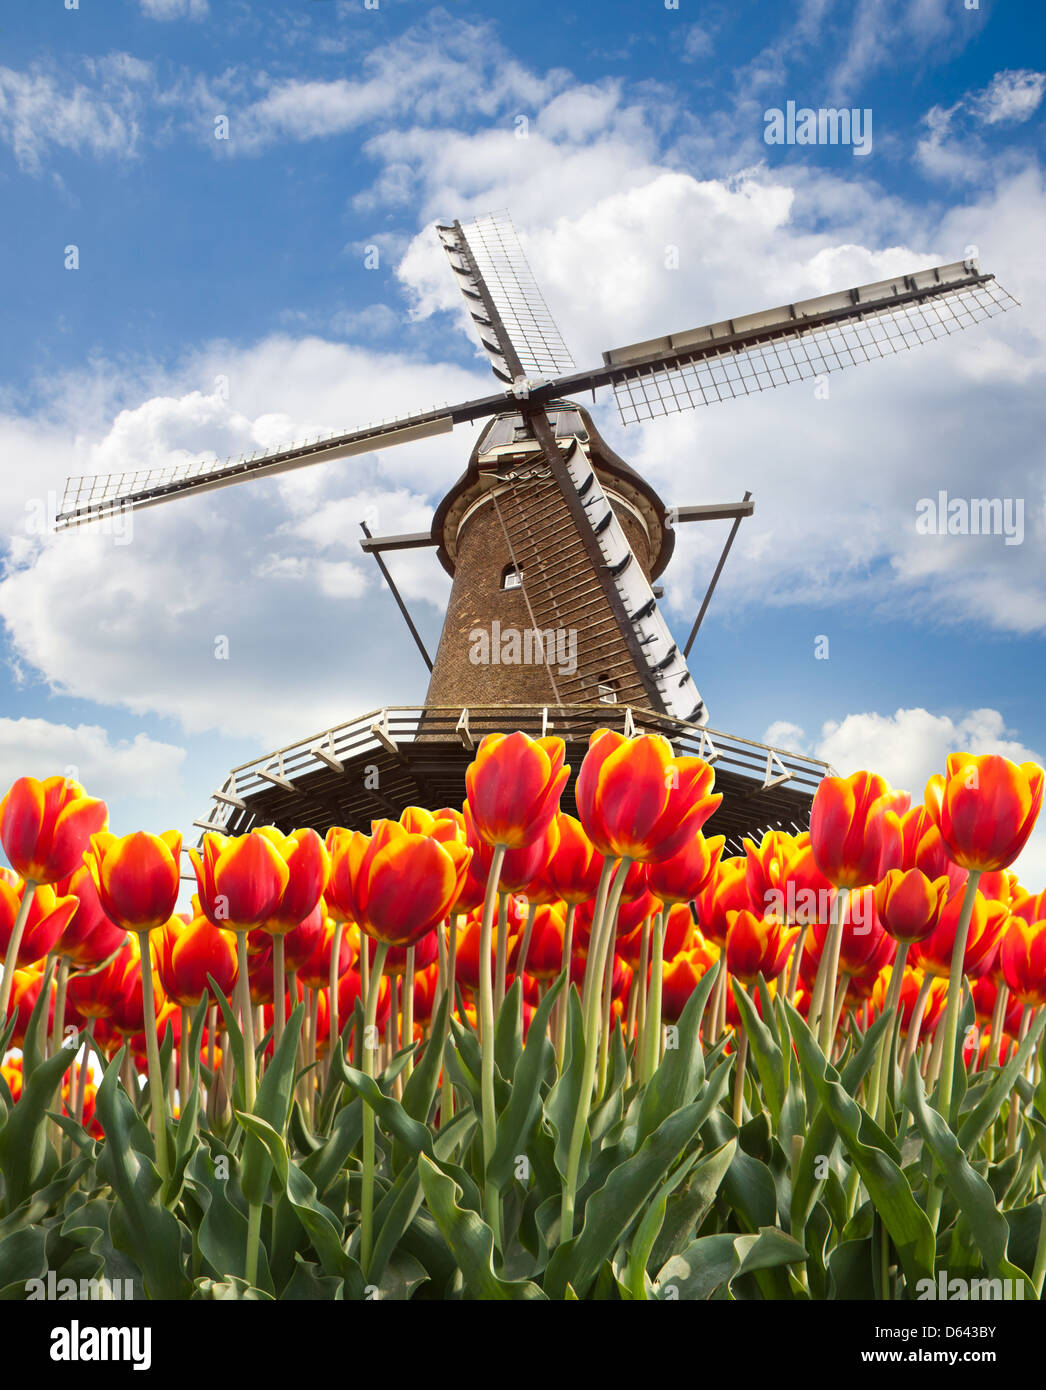 Windmill with tulips, Holland - Stock Image